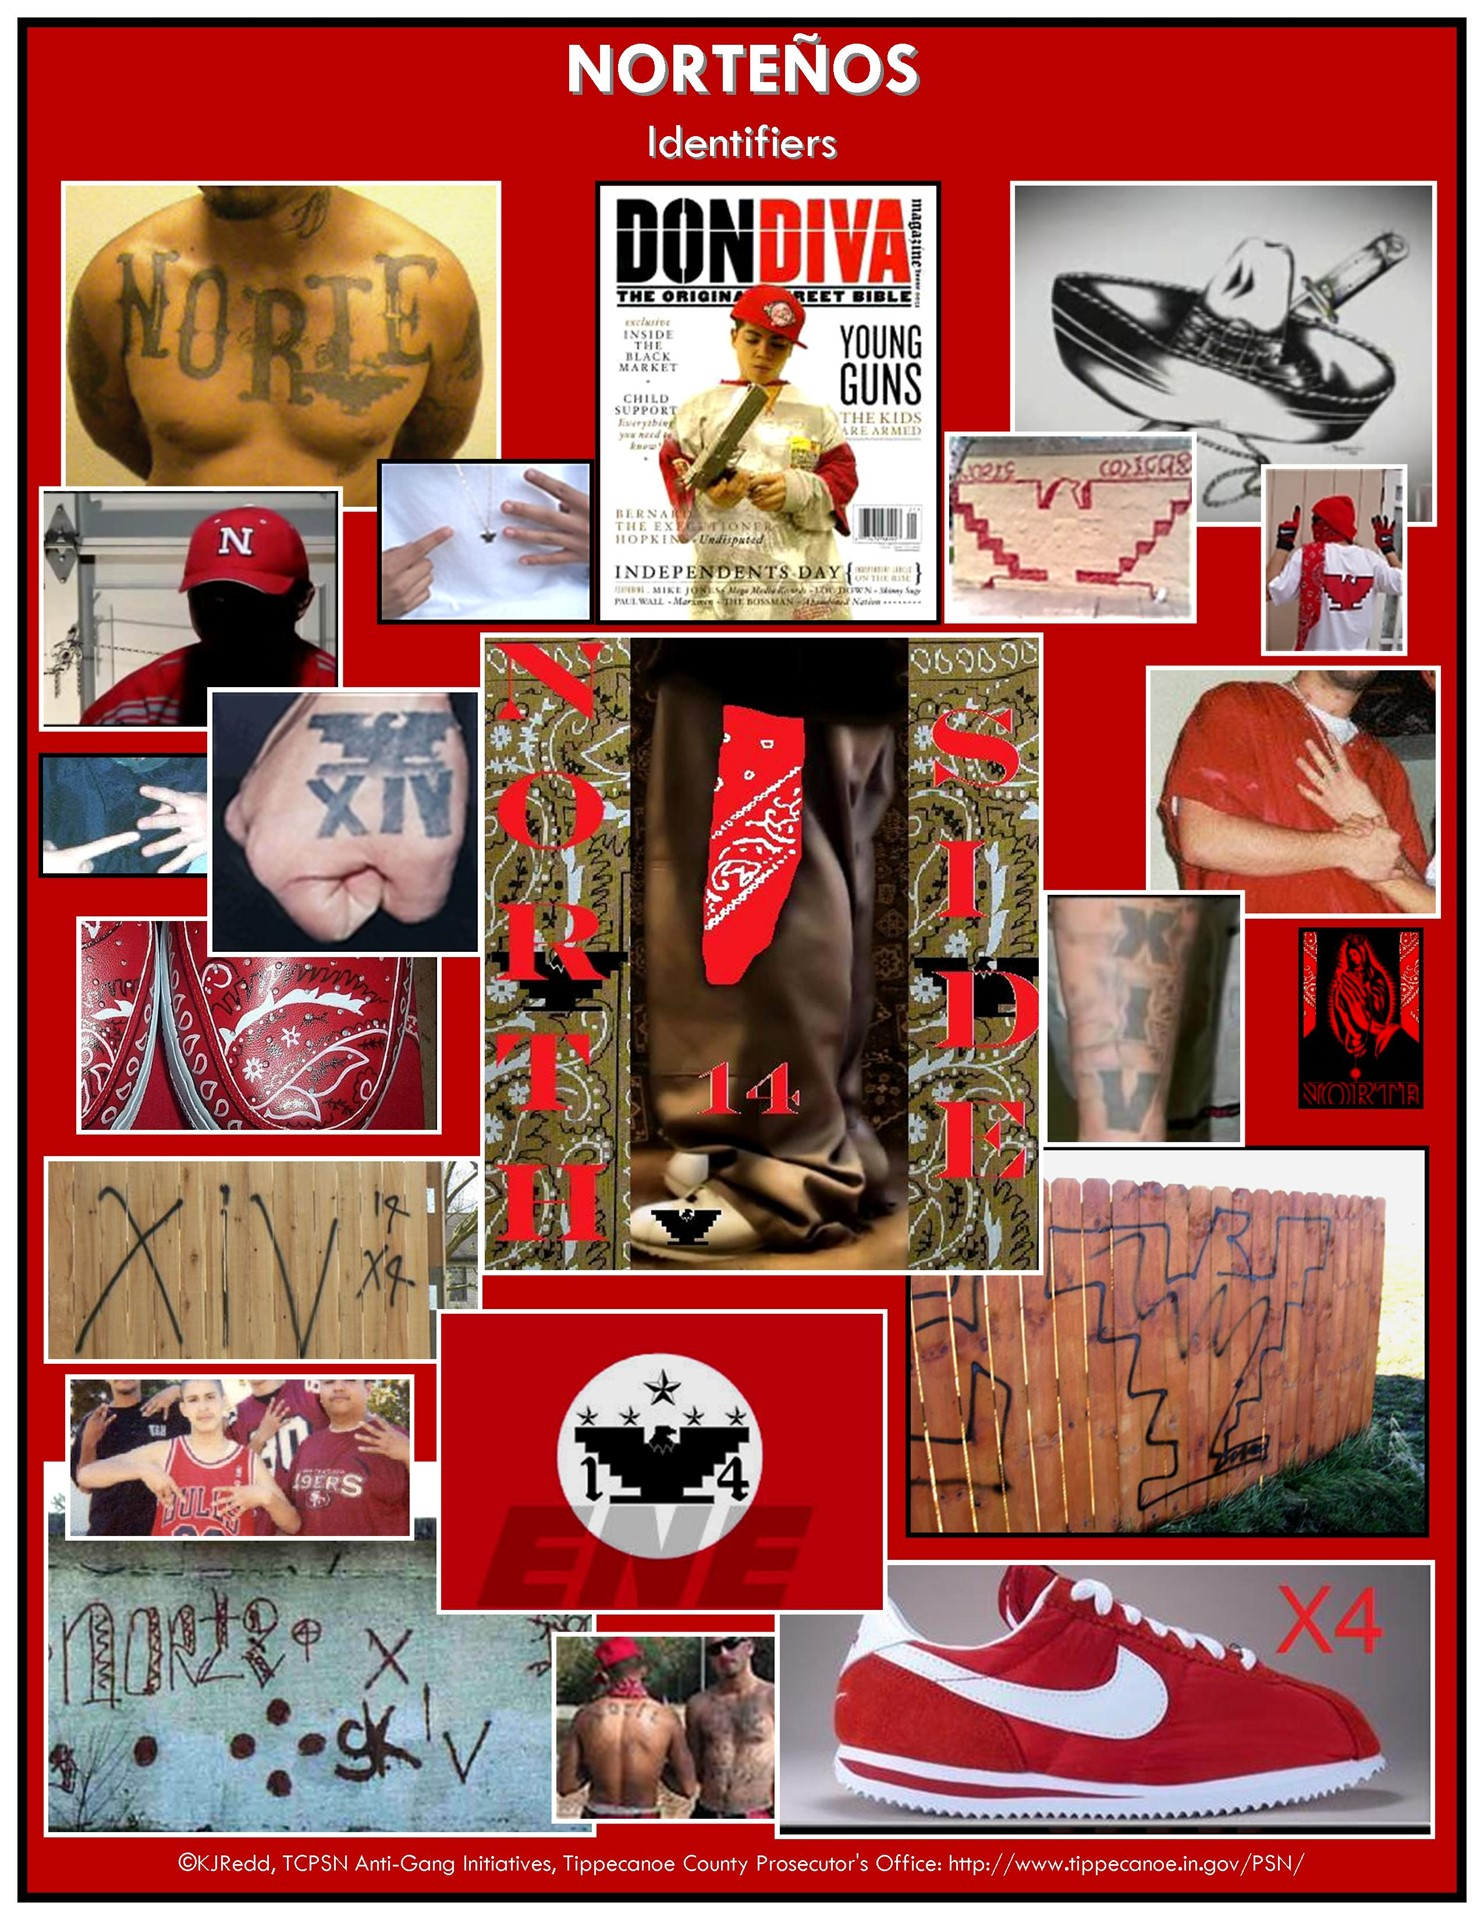 the gallery for gt norteno gang signs and meanings